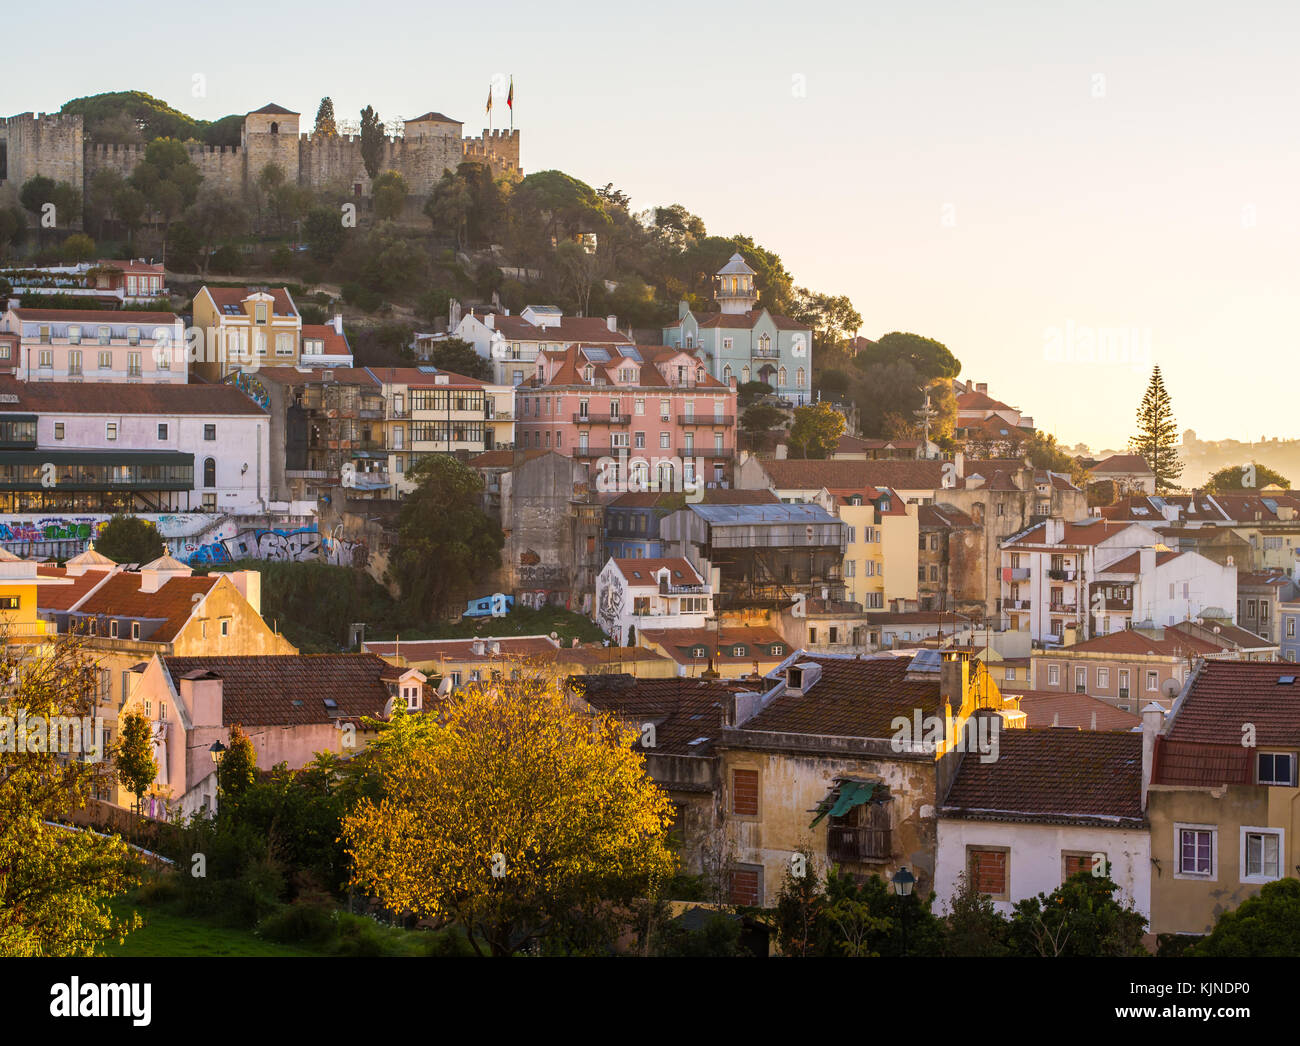 Soa Jorge Castle in Lisbon, Portugal, with the sourrounding architecture, at sunset. - Stock Image